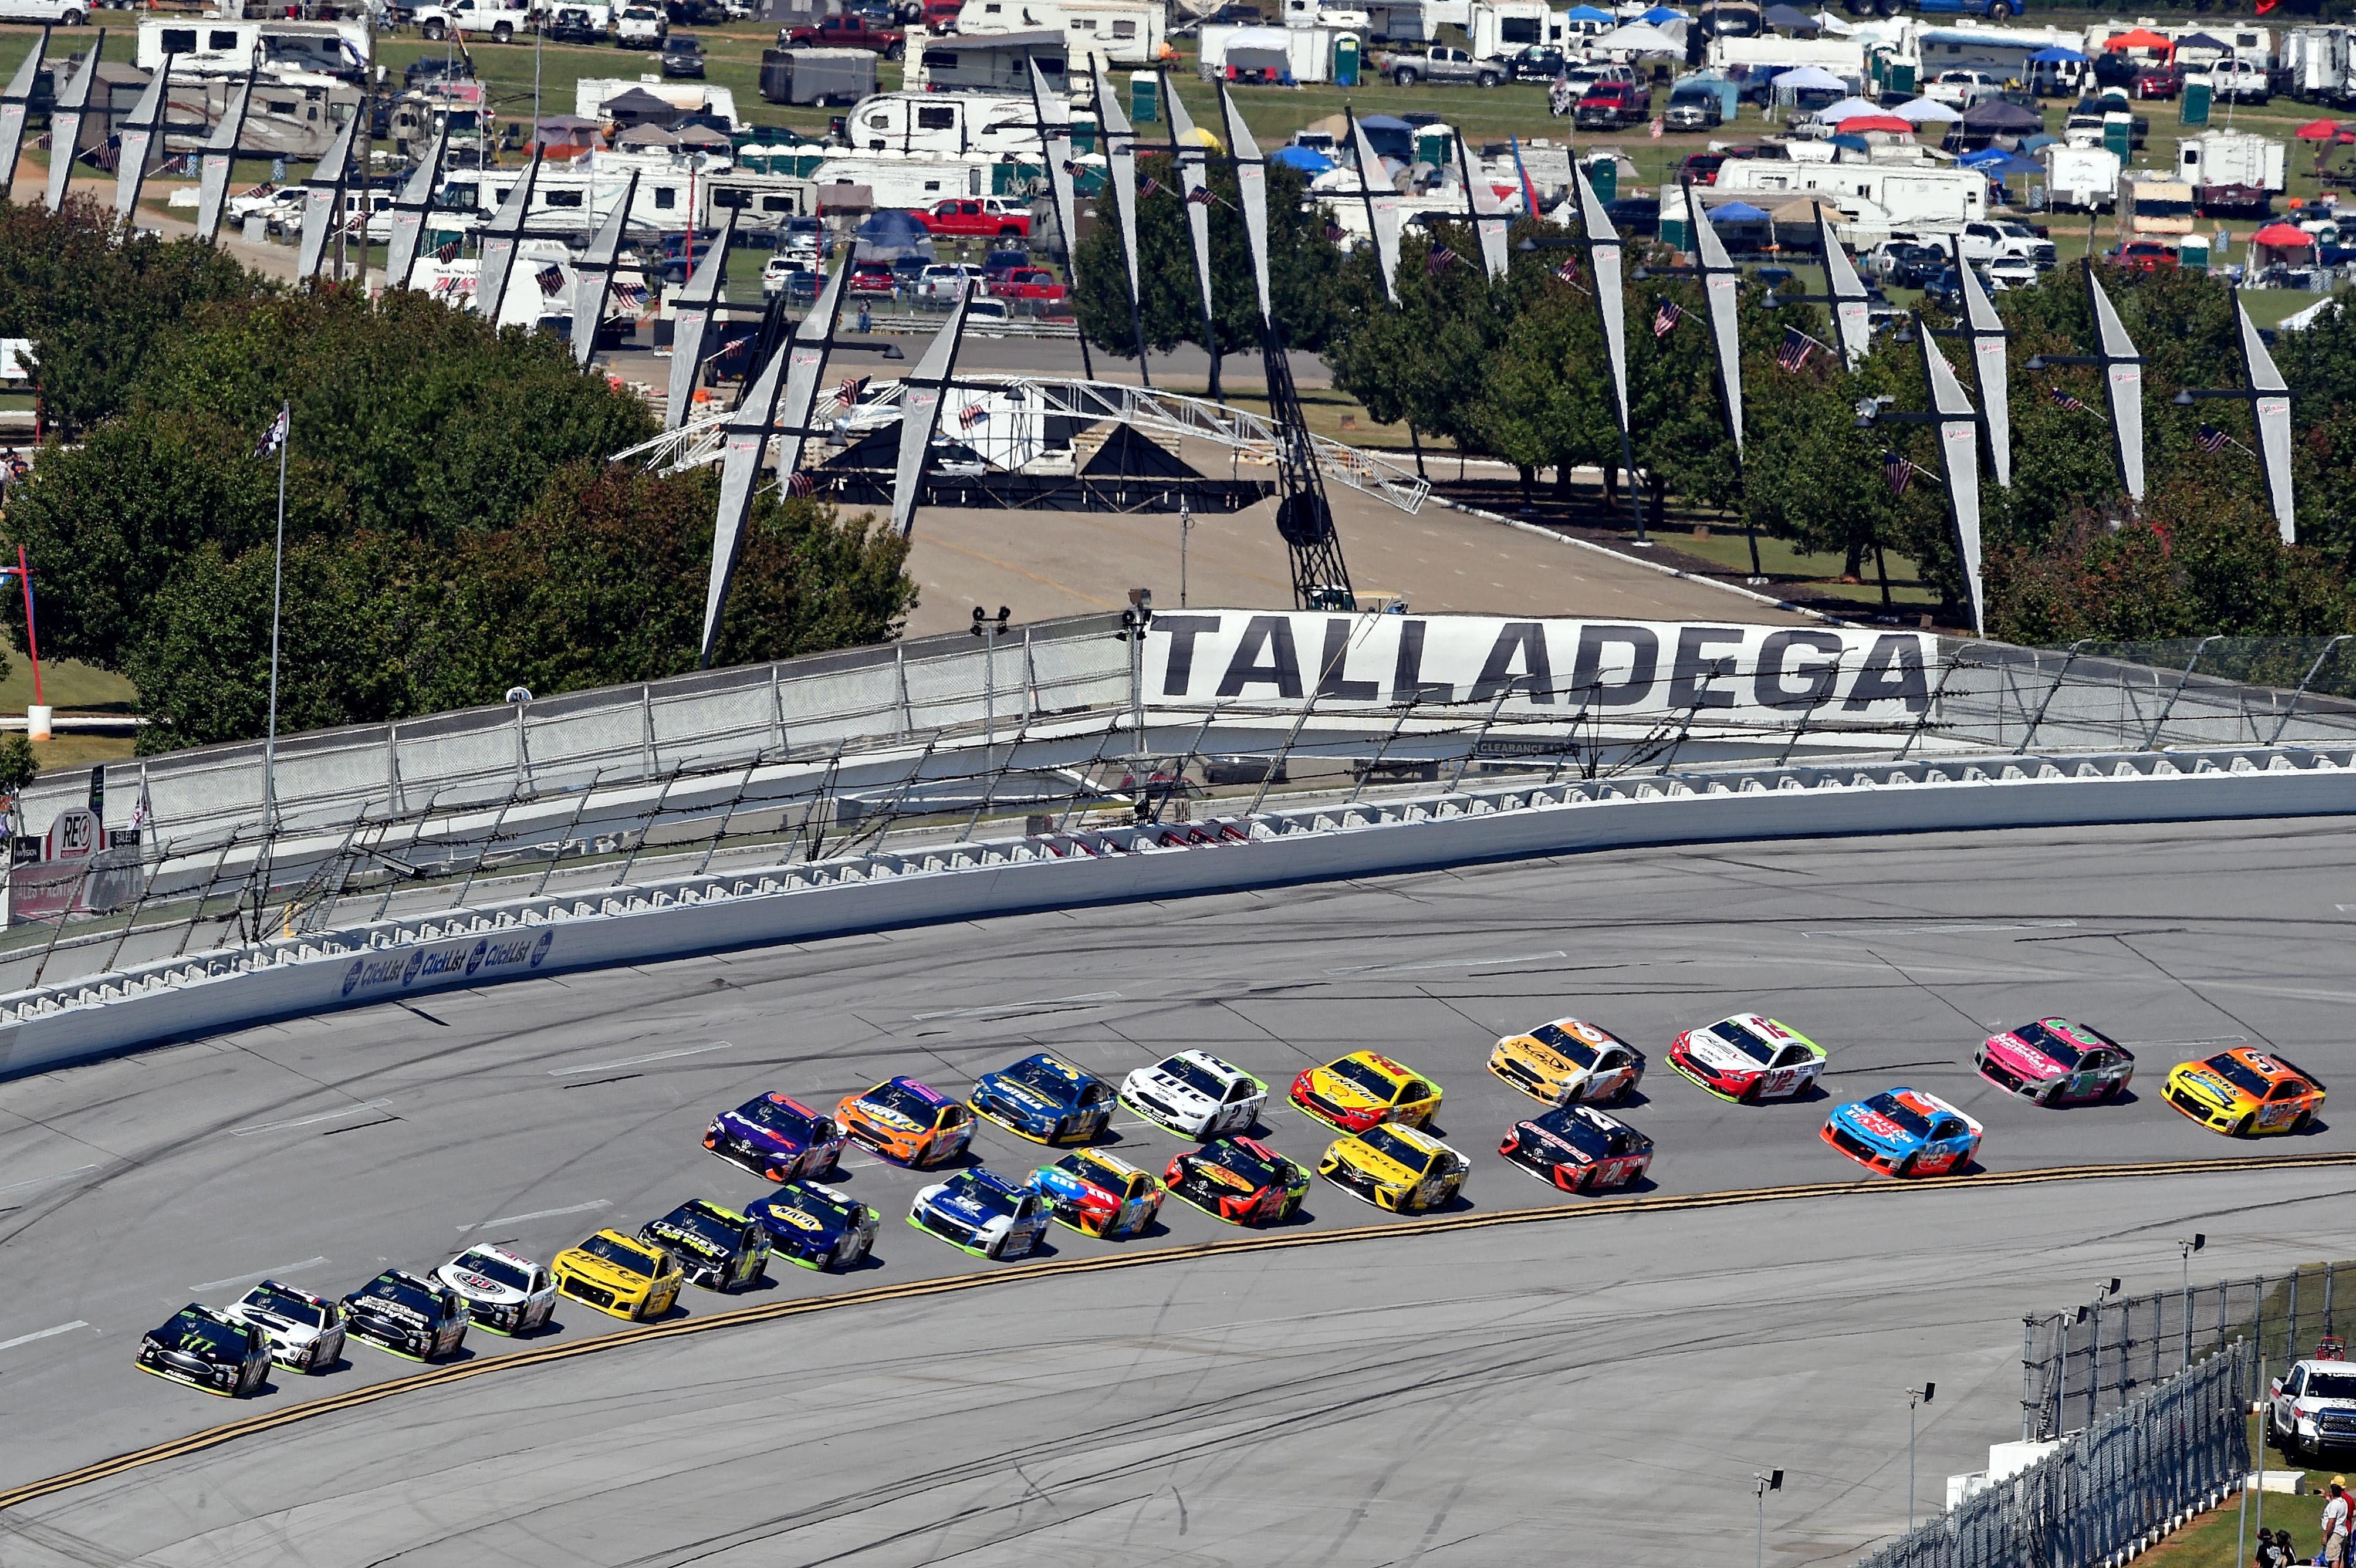 Talladega Race Schedule 2019 What time does the 2019 NASCAR Cup race at Talladega start